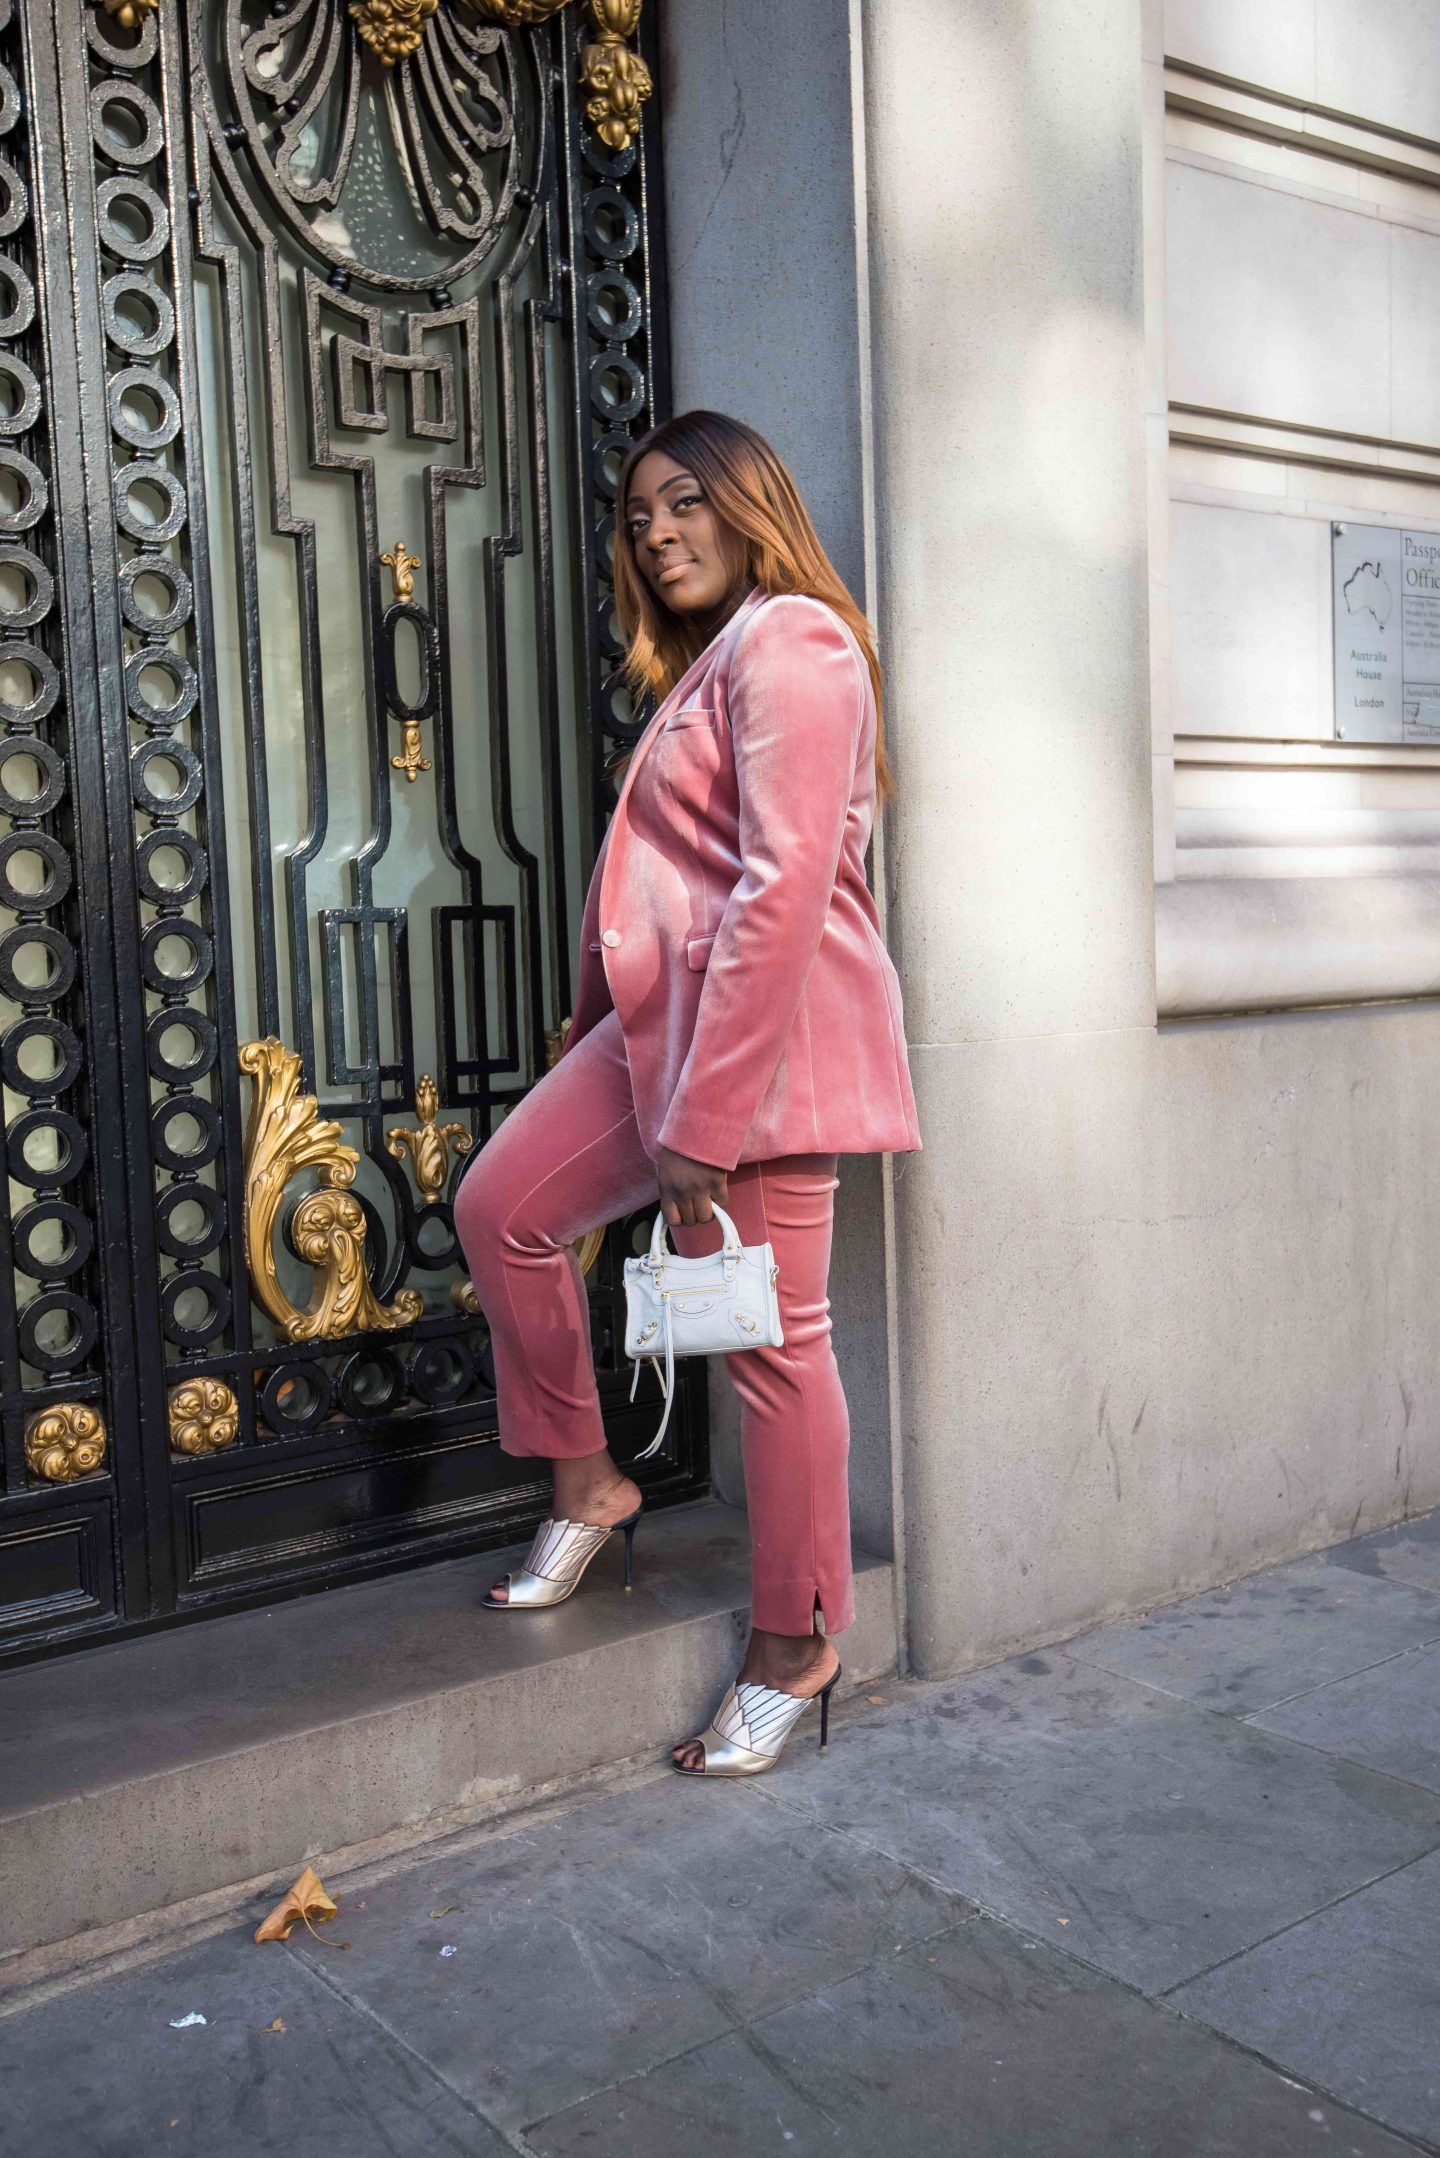 How to Style the Balenciaga Mini Bag 2 - belenciaga city bag -top shop velvet suit - malone souliers donna metalic mules - Style and the Sass